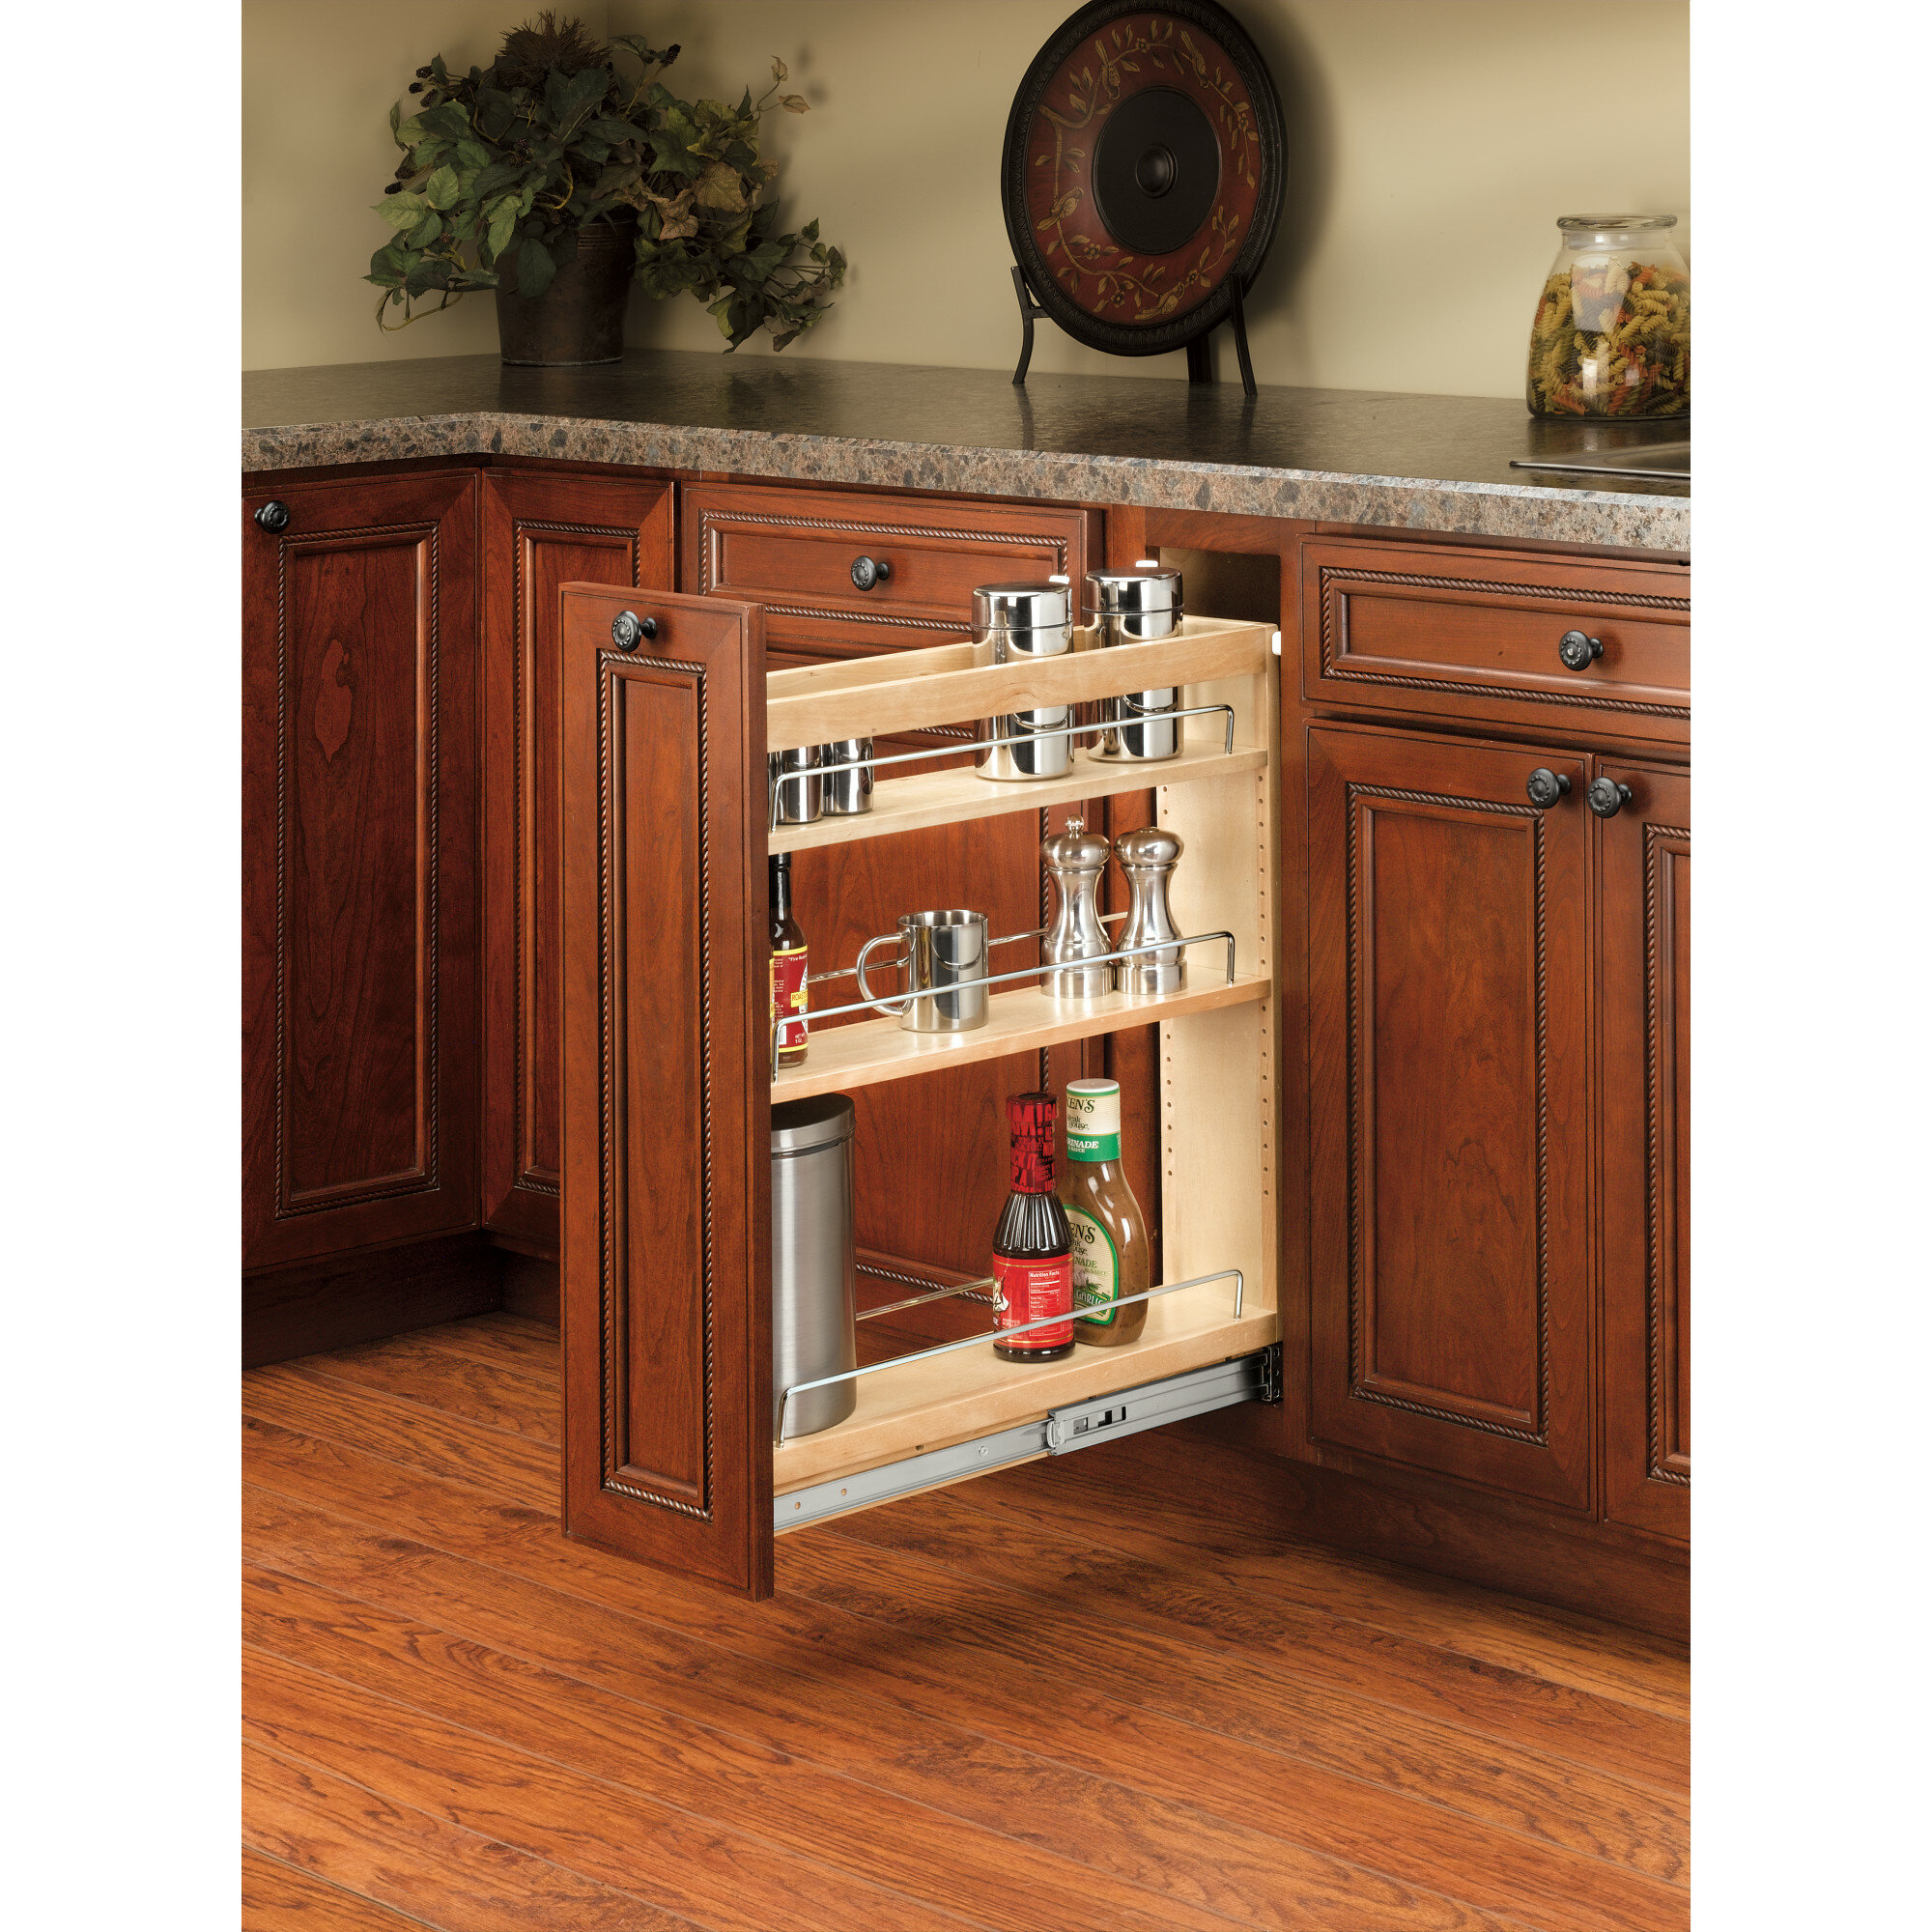 Base Cabinet 3 Shelf Pull Out Pantry